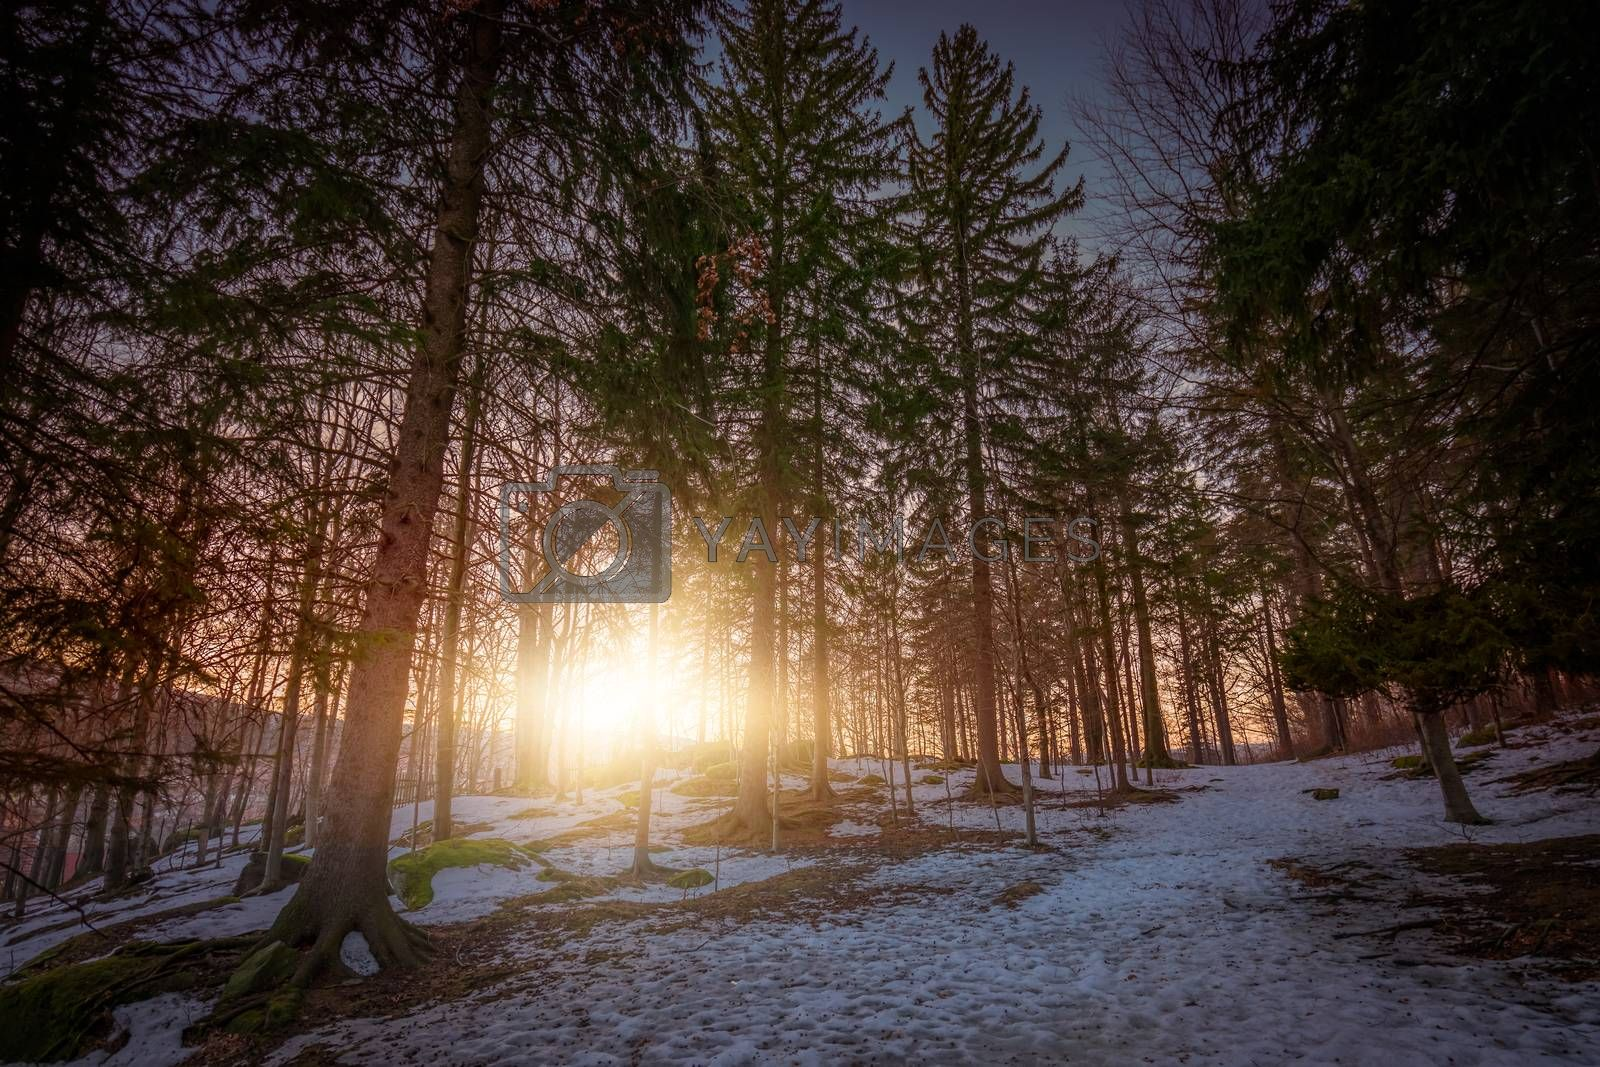 Sun shining through the tree branches in the forest in winter, Karkonosze mountains, Poland